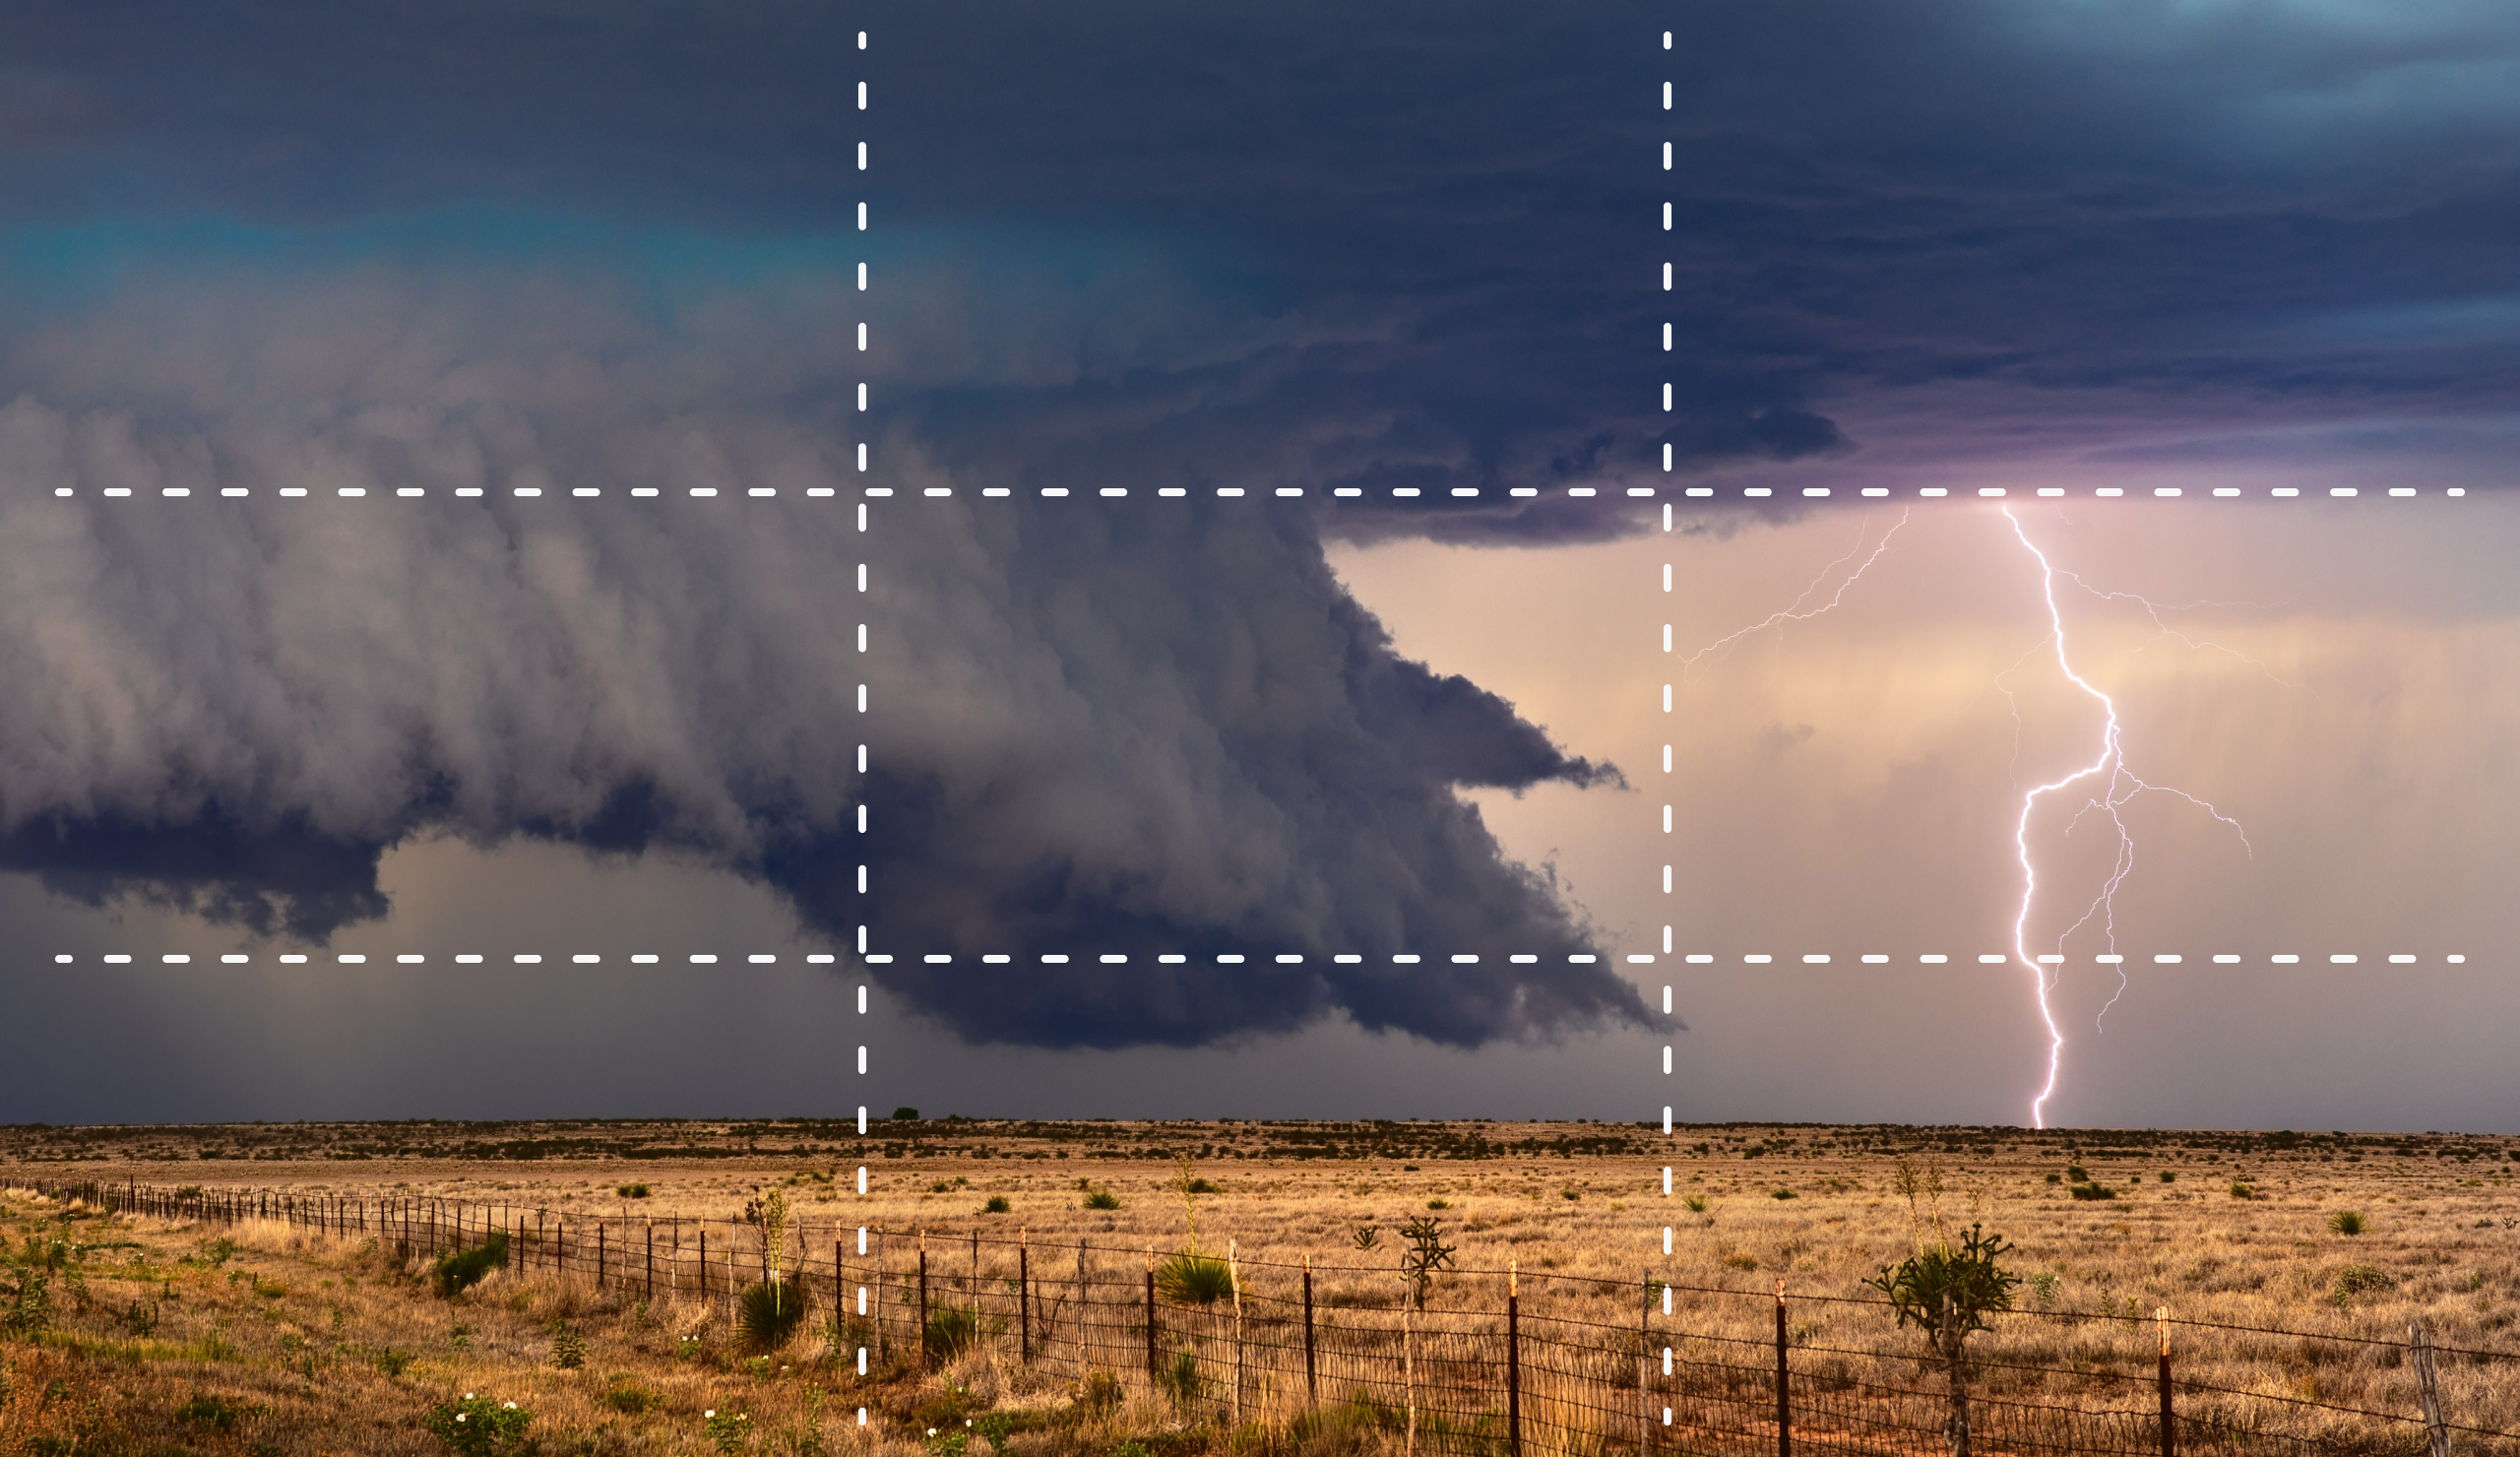 Image of a storm with the rule of thirds grid overlay